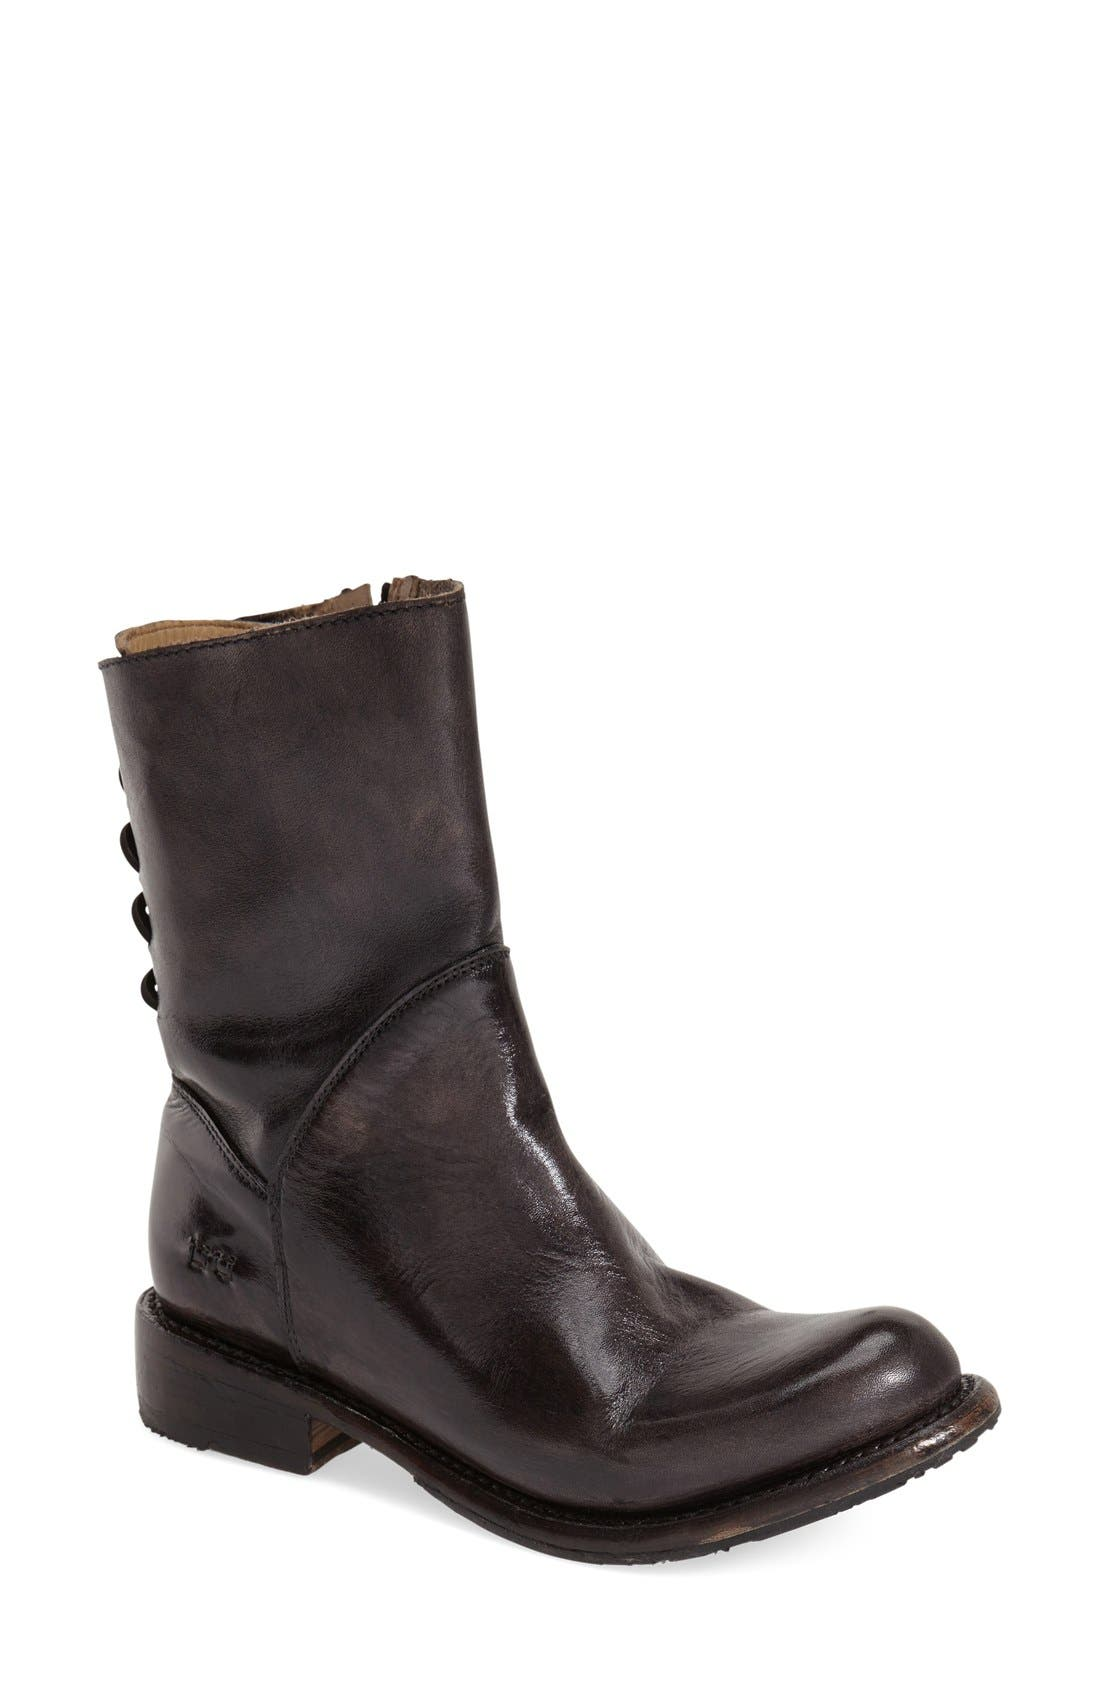 Alternate Image 1 Selected - Bed Stu 'Cheshire' Boot (Women)